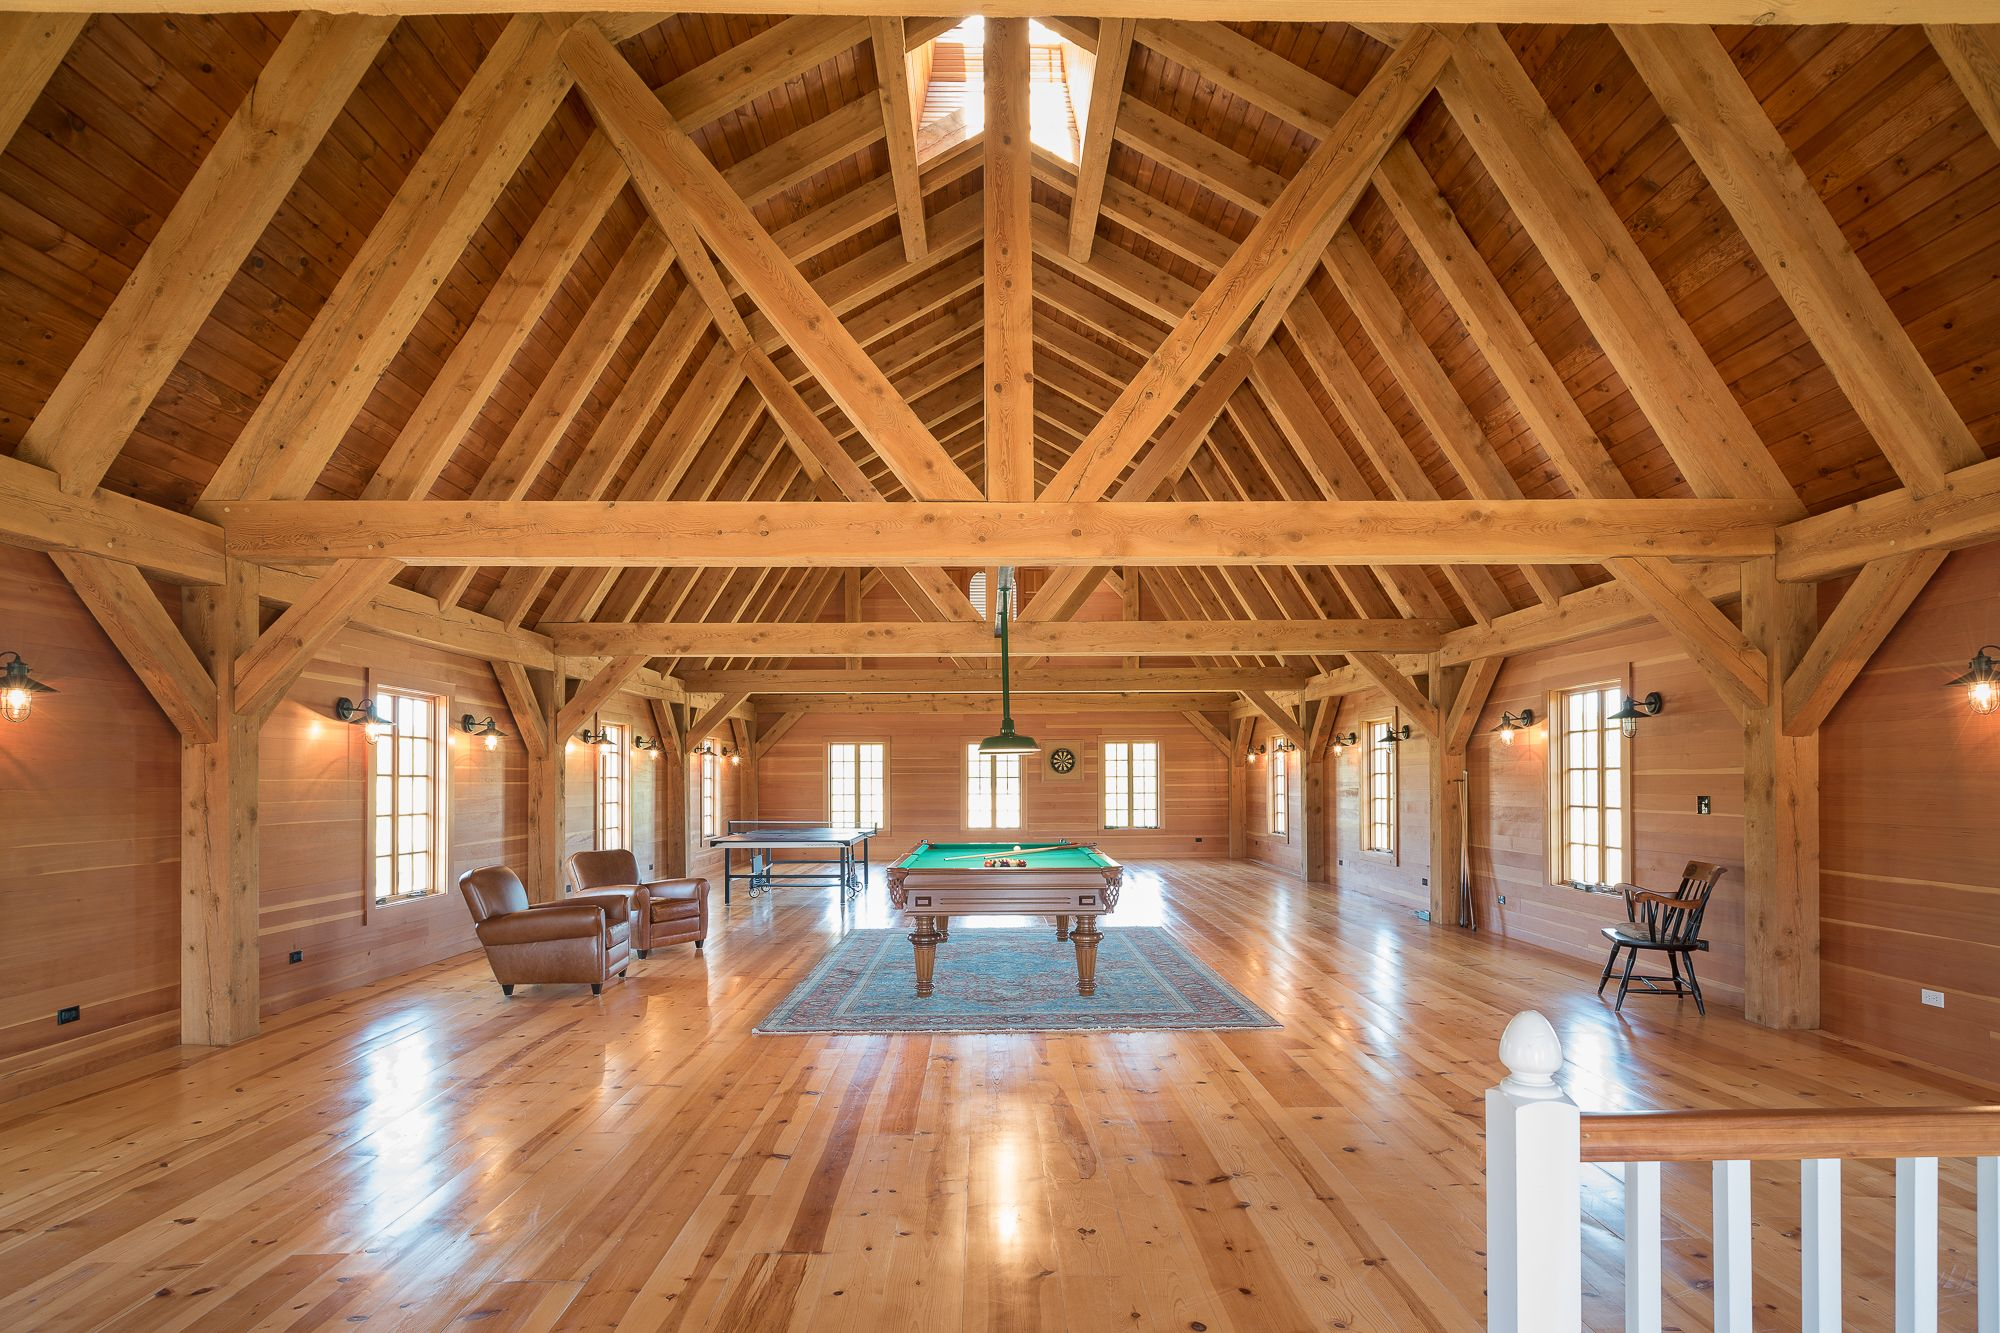 Gambrel barn frame post beam construction abodes